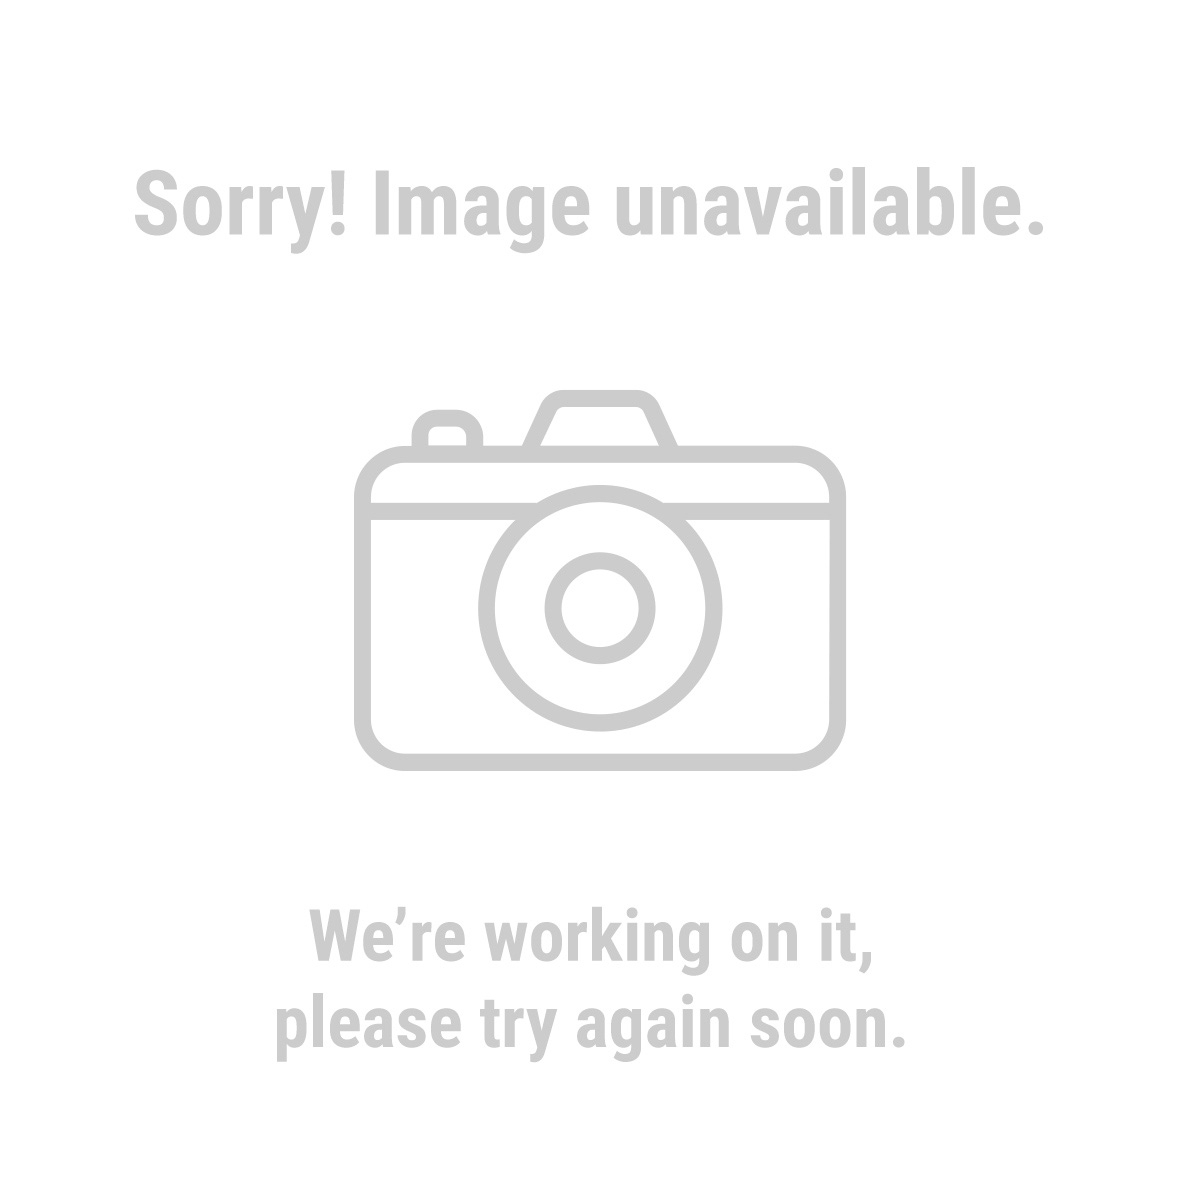 "Warrior 69943 6 Piece 4-1/2"" x 5-1/2"" 150 Grit Sanding Sheets"